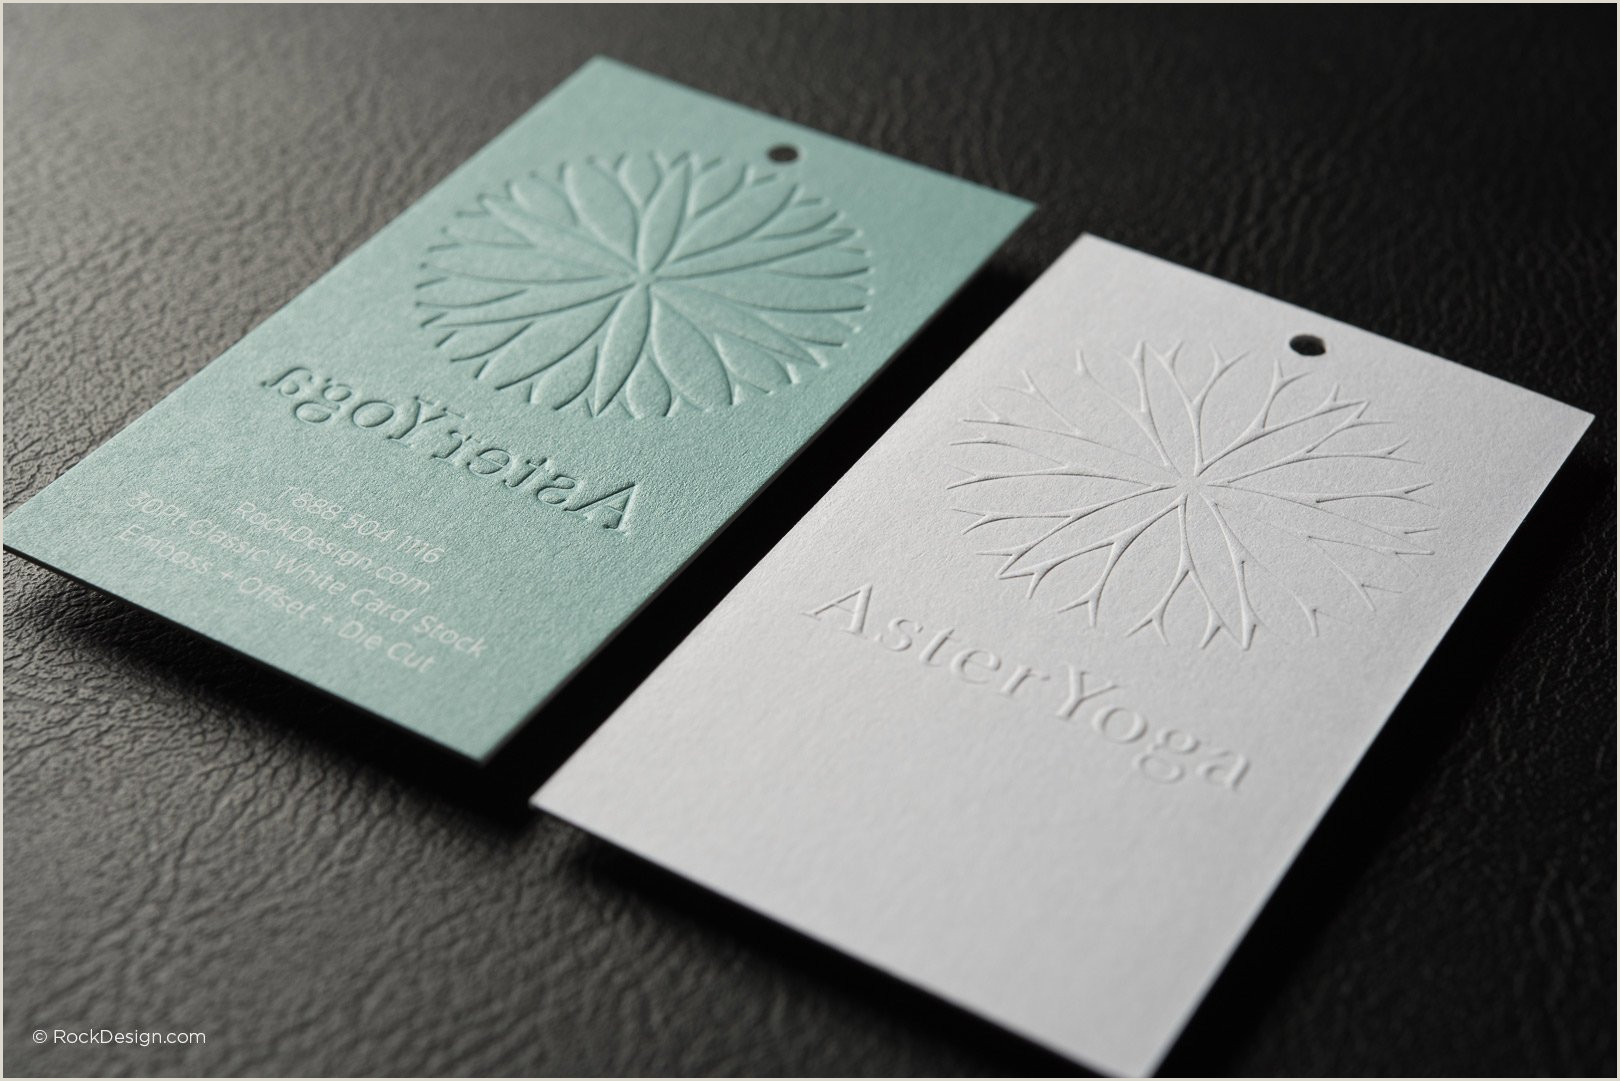 Best Business Cards Yoga Free Yoga Business Card Template